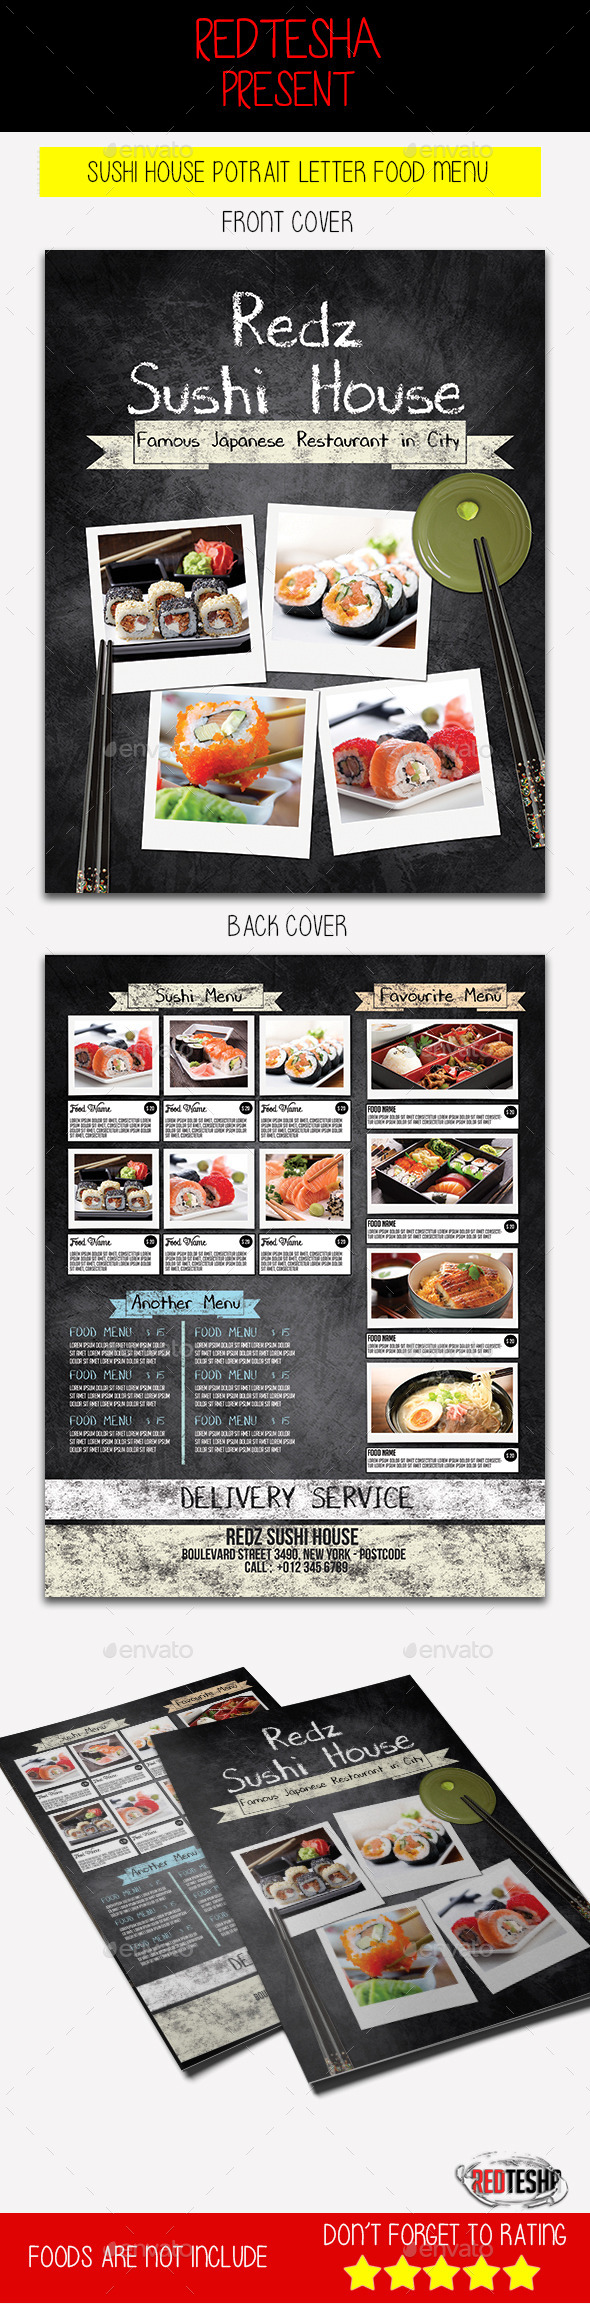 Steak House Potrait Menu - Food Menus Print Templates